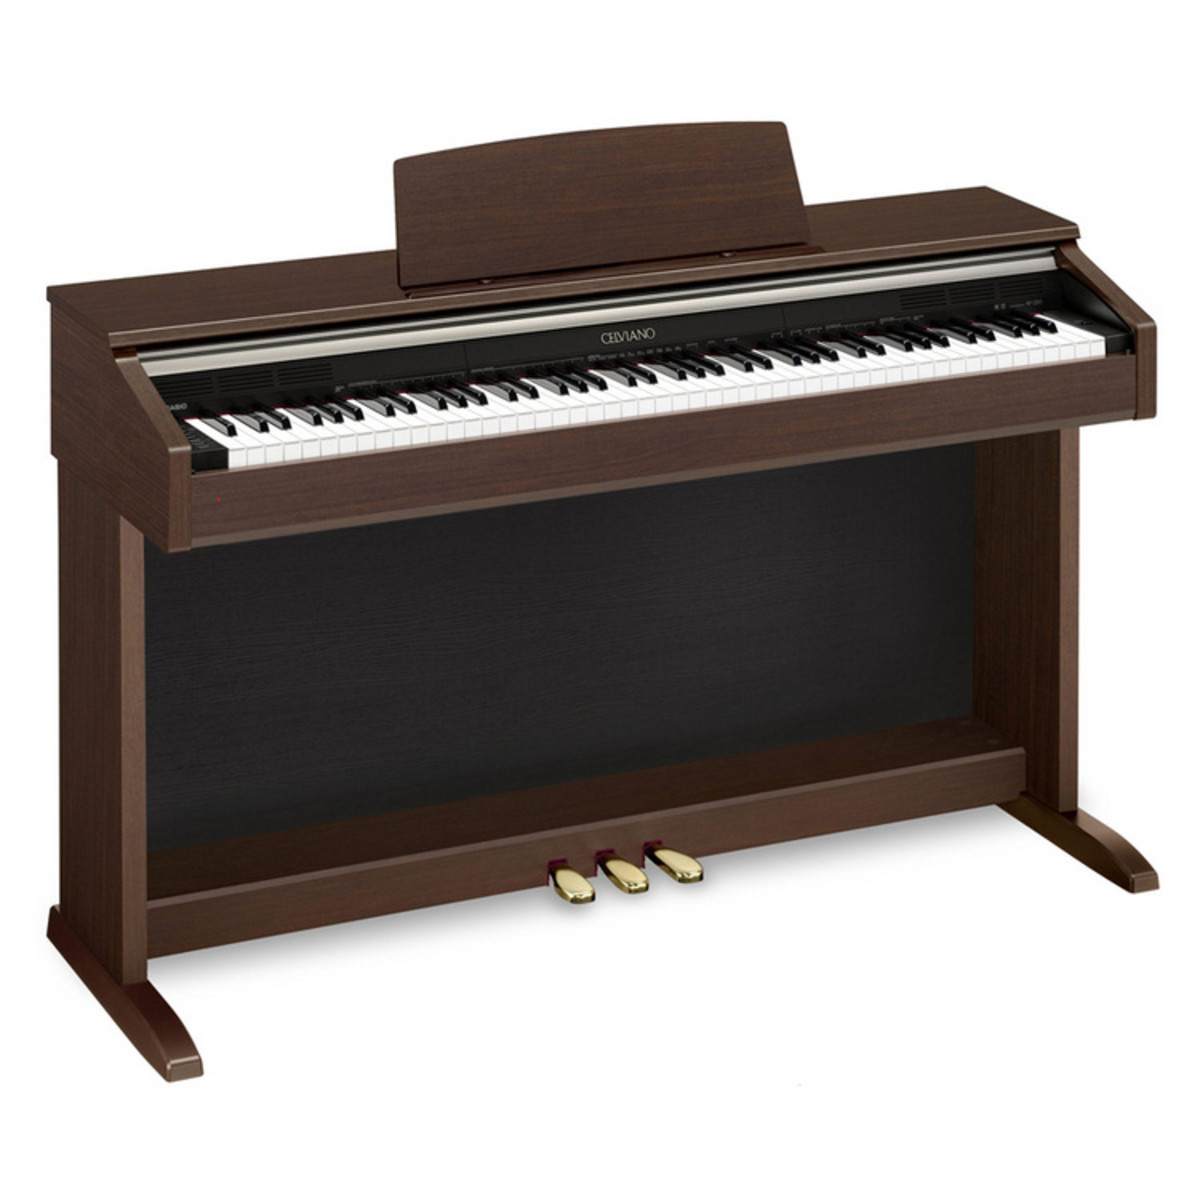 casio celviano ap 220 digital piano brown box opened at. Black Bedroom Furniture Sets. Home Design Ideas